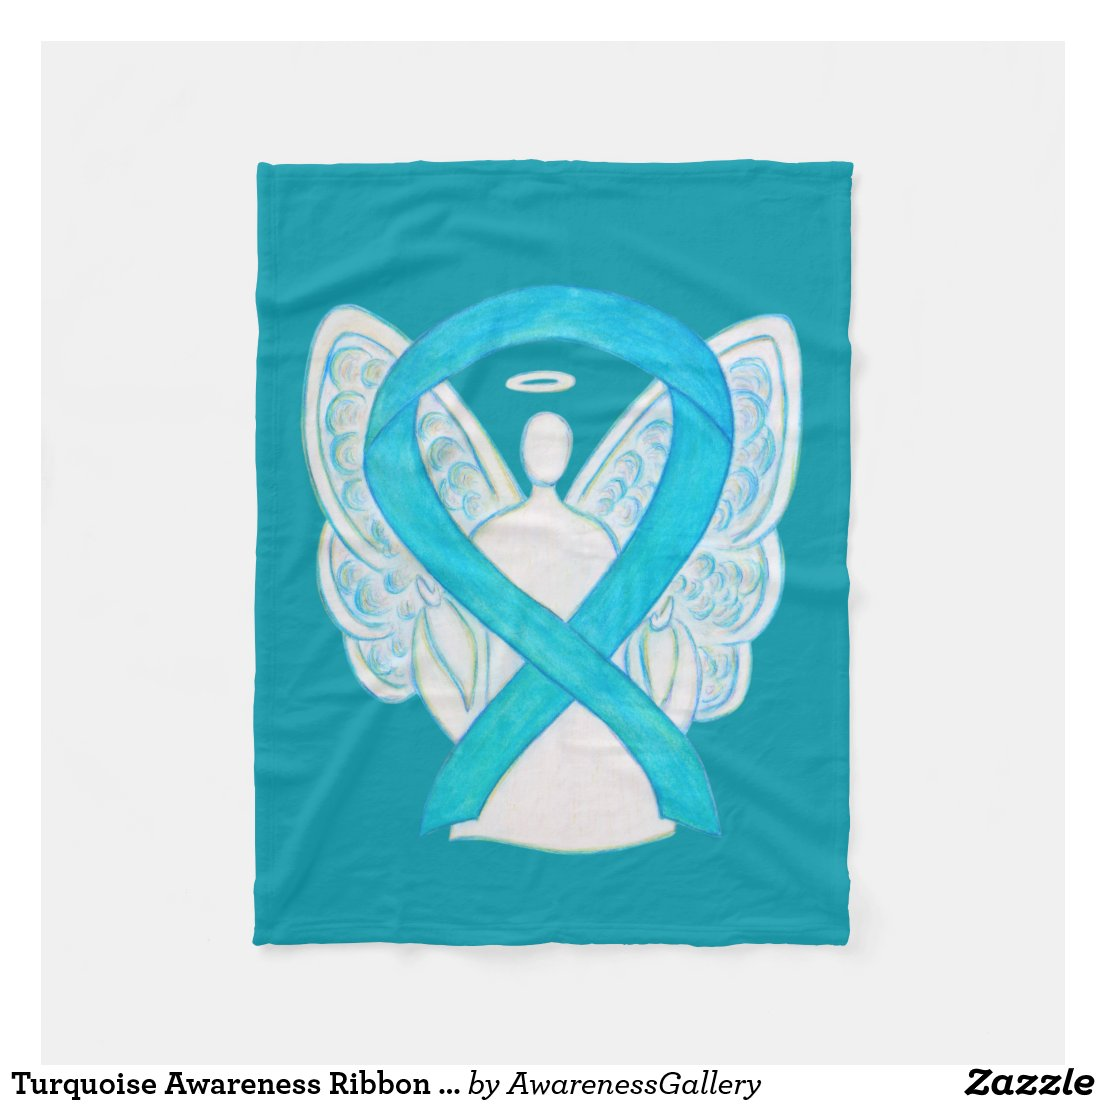 Turquoise Awareness Ribbon Angel Soft Blanket